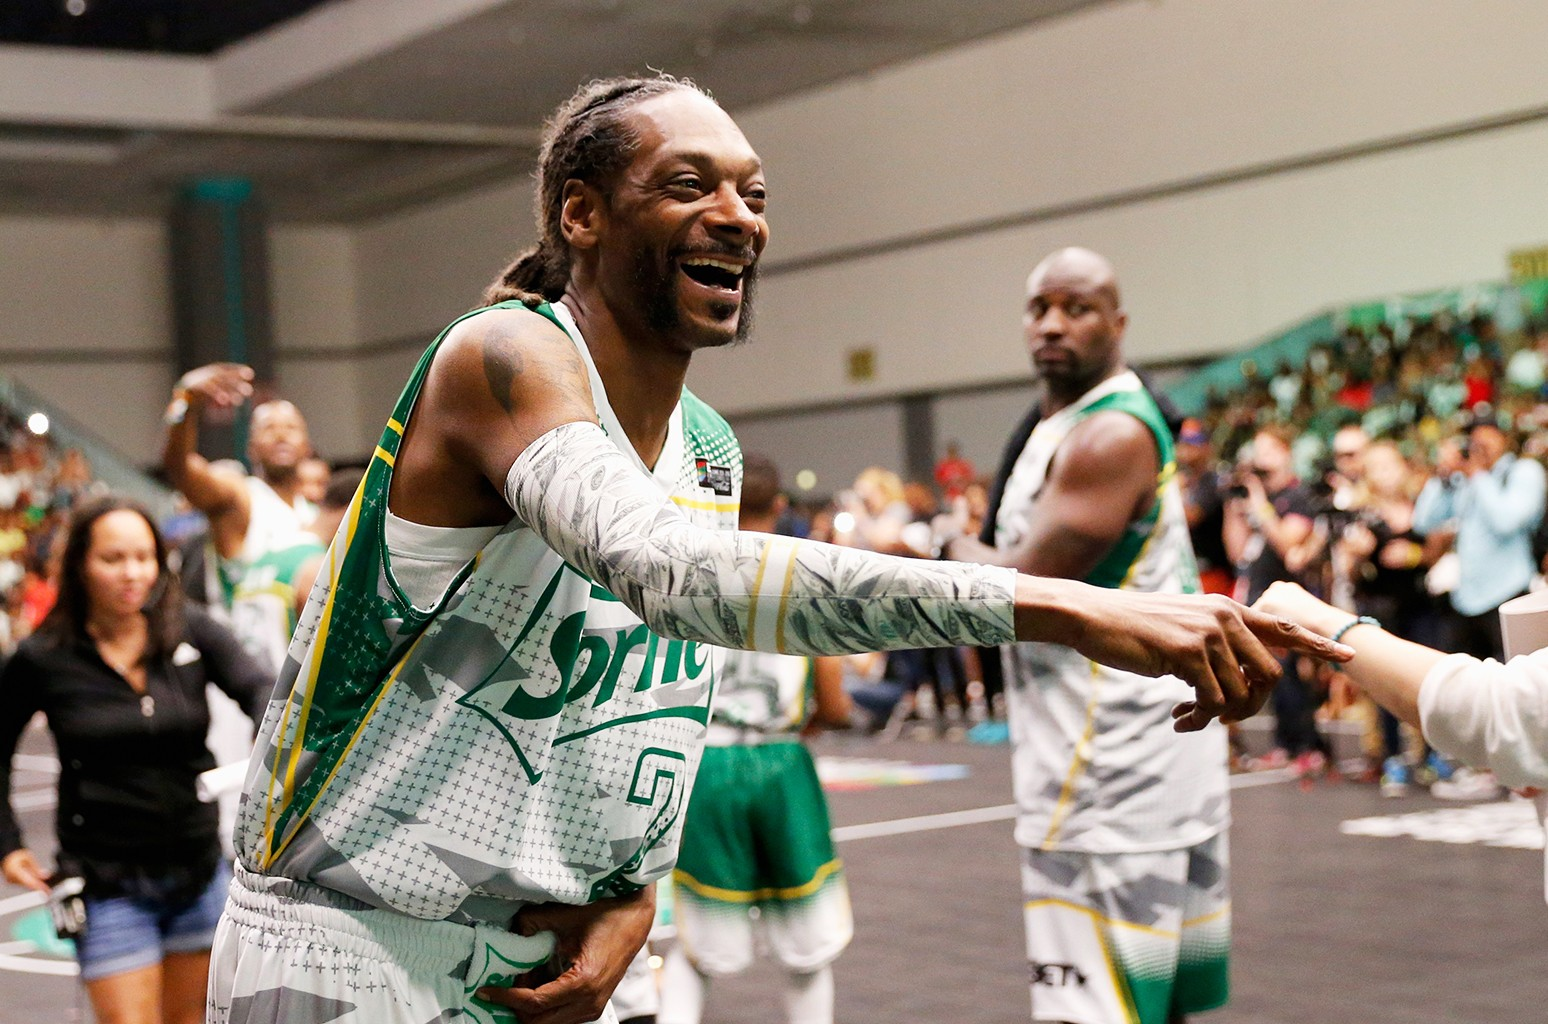 Snoop Dogg participates in the celebrity basketball game presented by Sprite during the 2016 BET Experience on June 25, 2016 in Los Angeles.